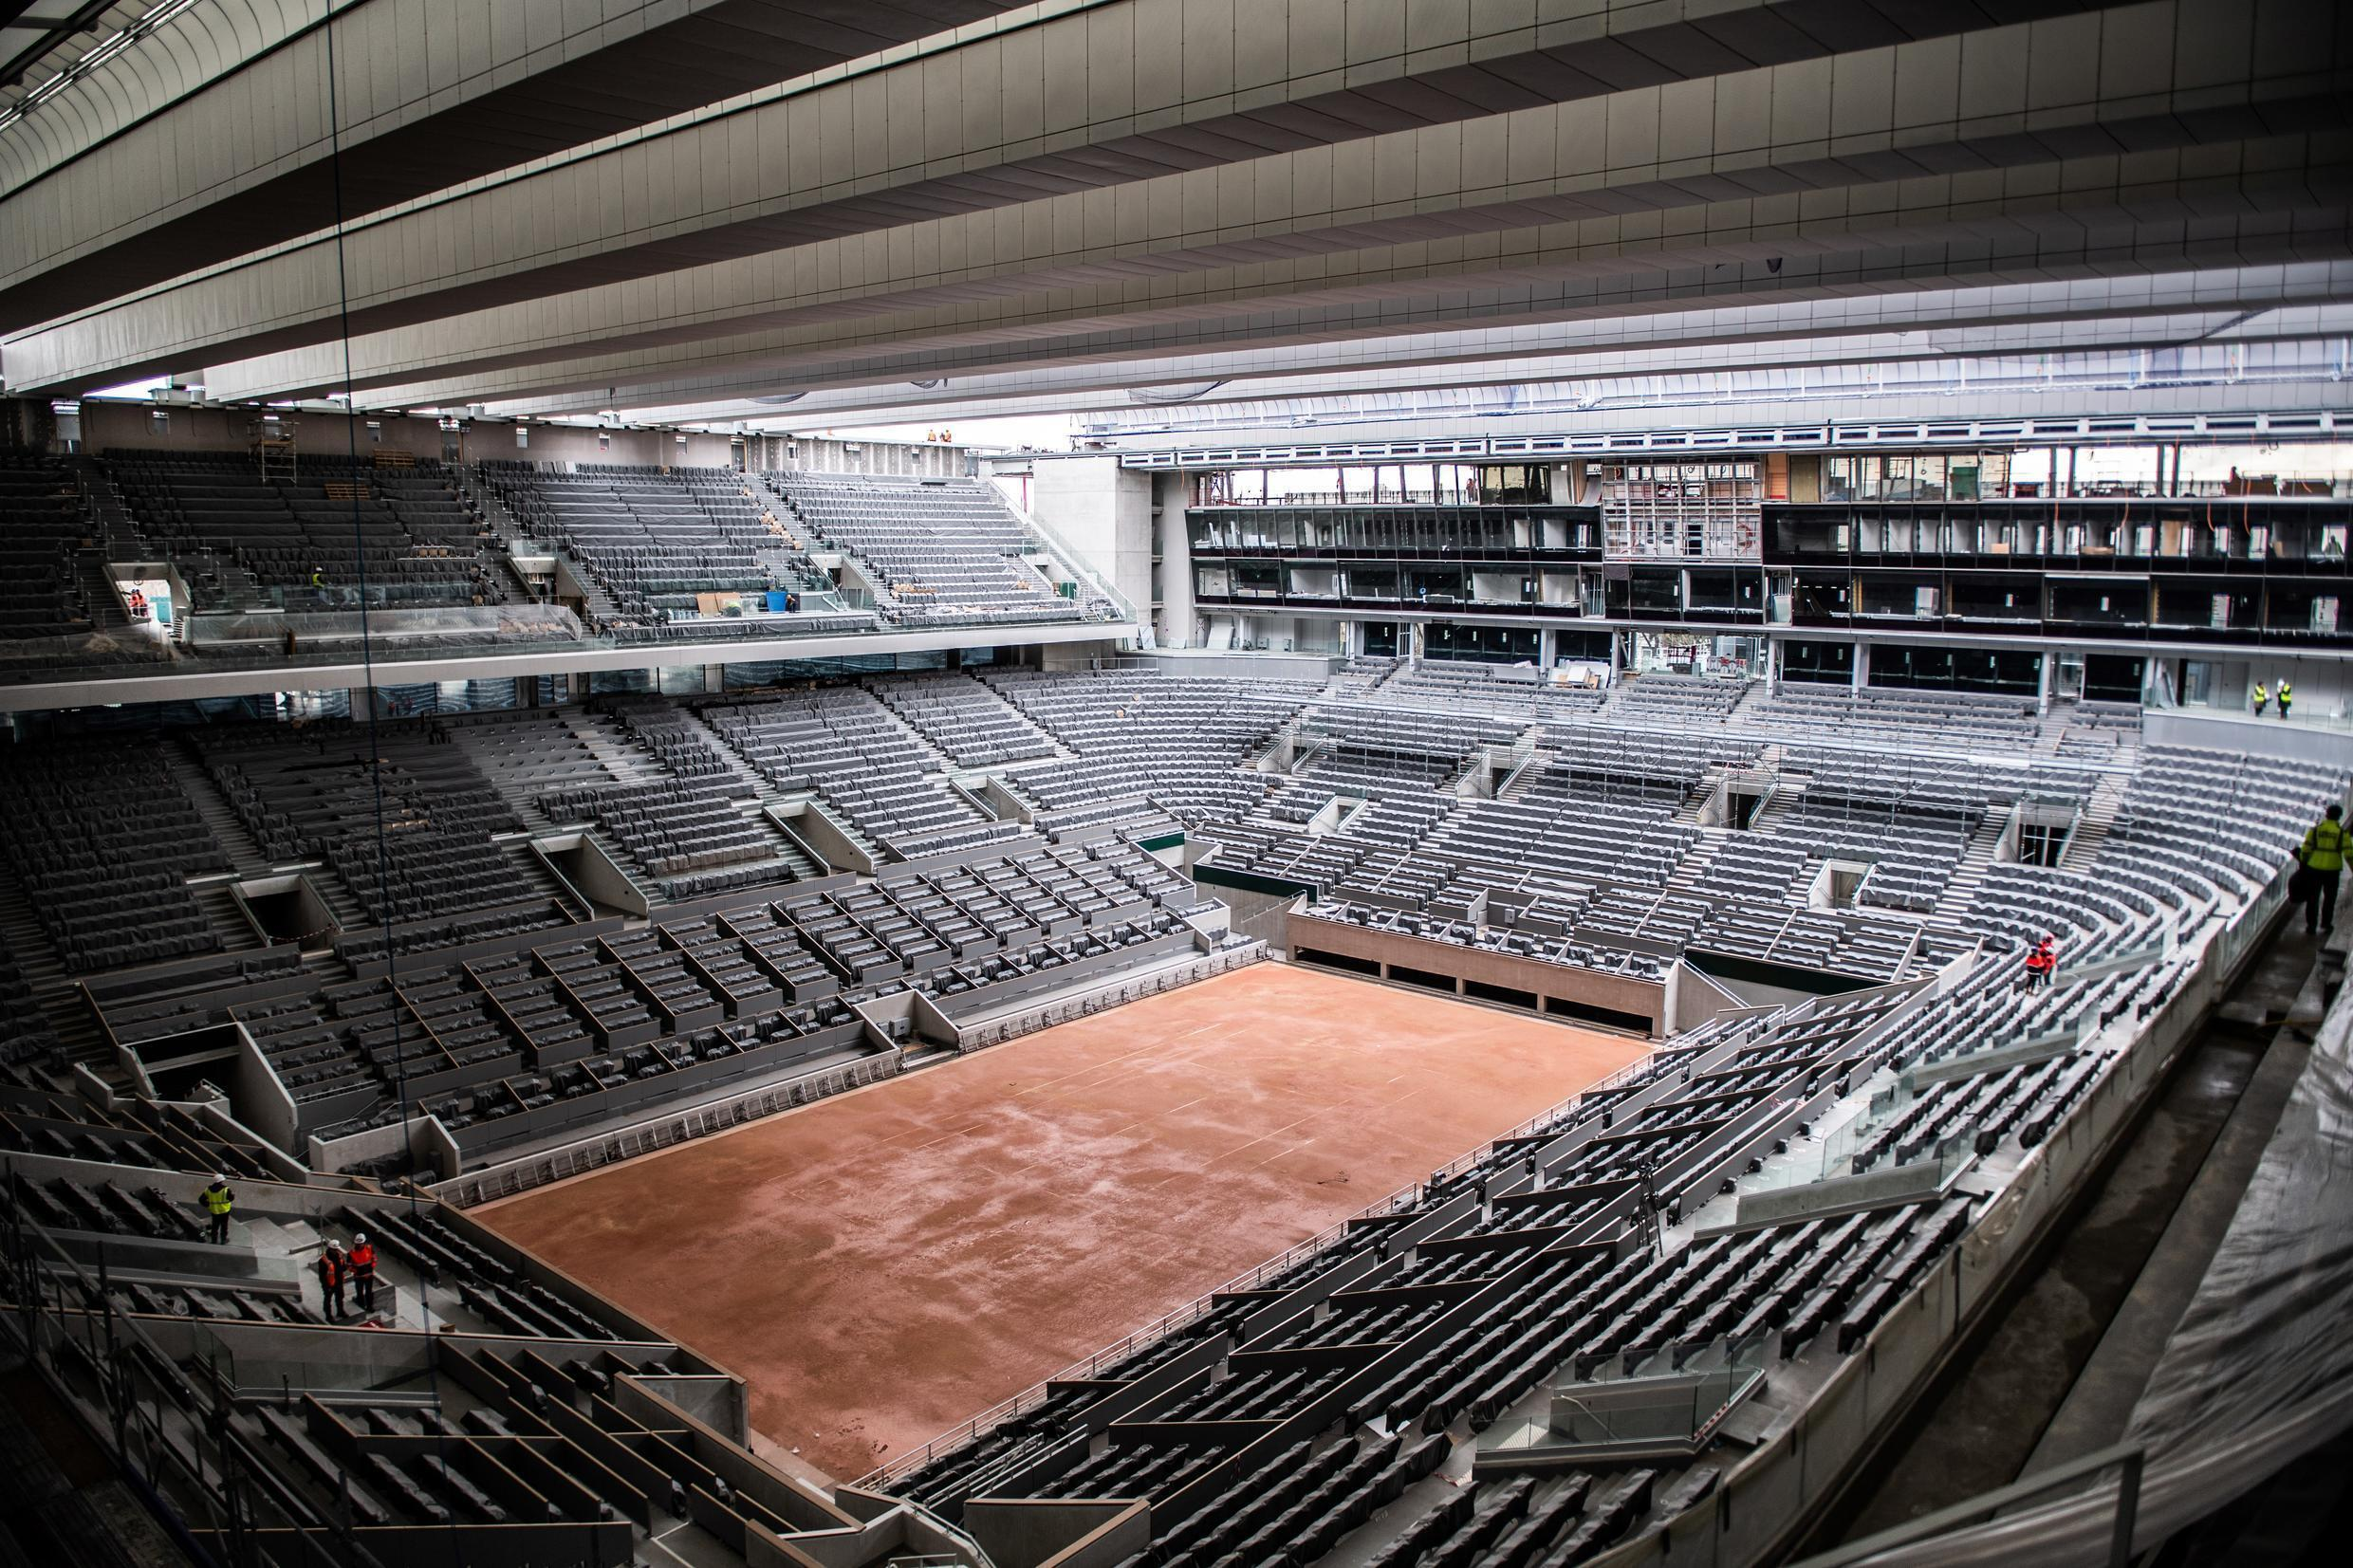 The Philippe Chatrier court at Roland Garros, complete with a new retractable roof, would host the finals of the French Open